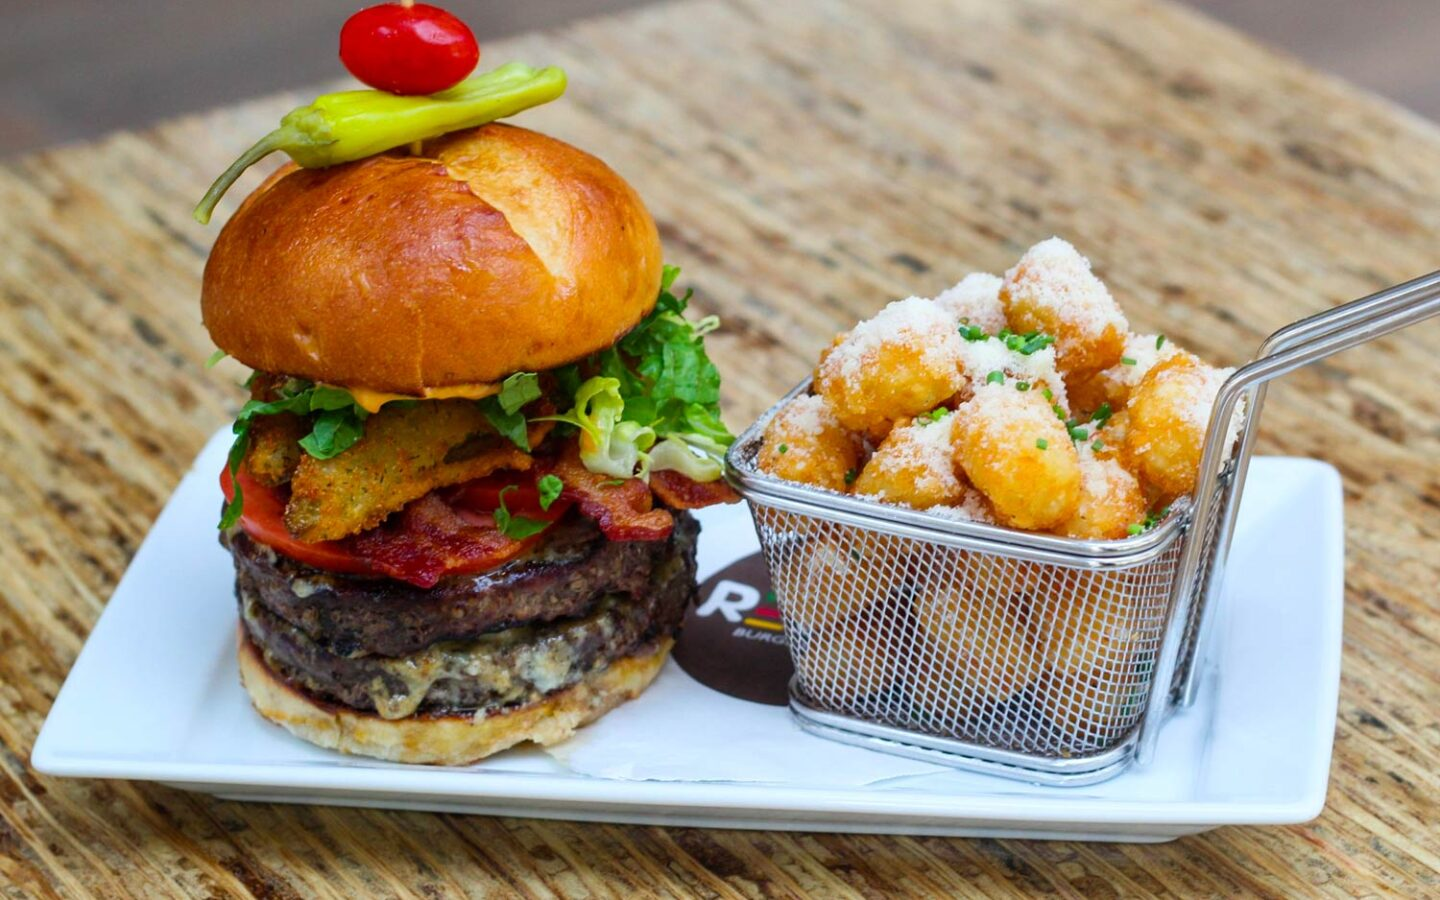 plate with a burger next to a basket of home fries